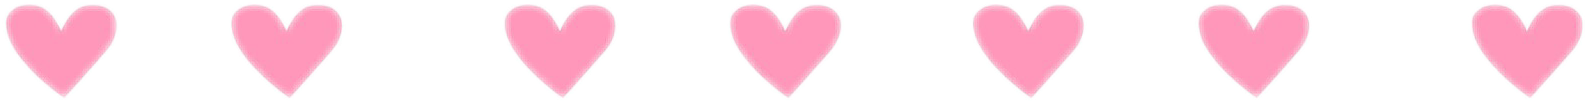 lovely girly overlay hearts corazones ftestickers ftesticker freetoedit